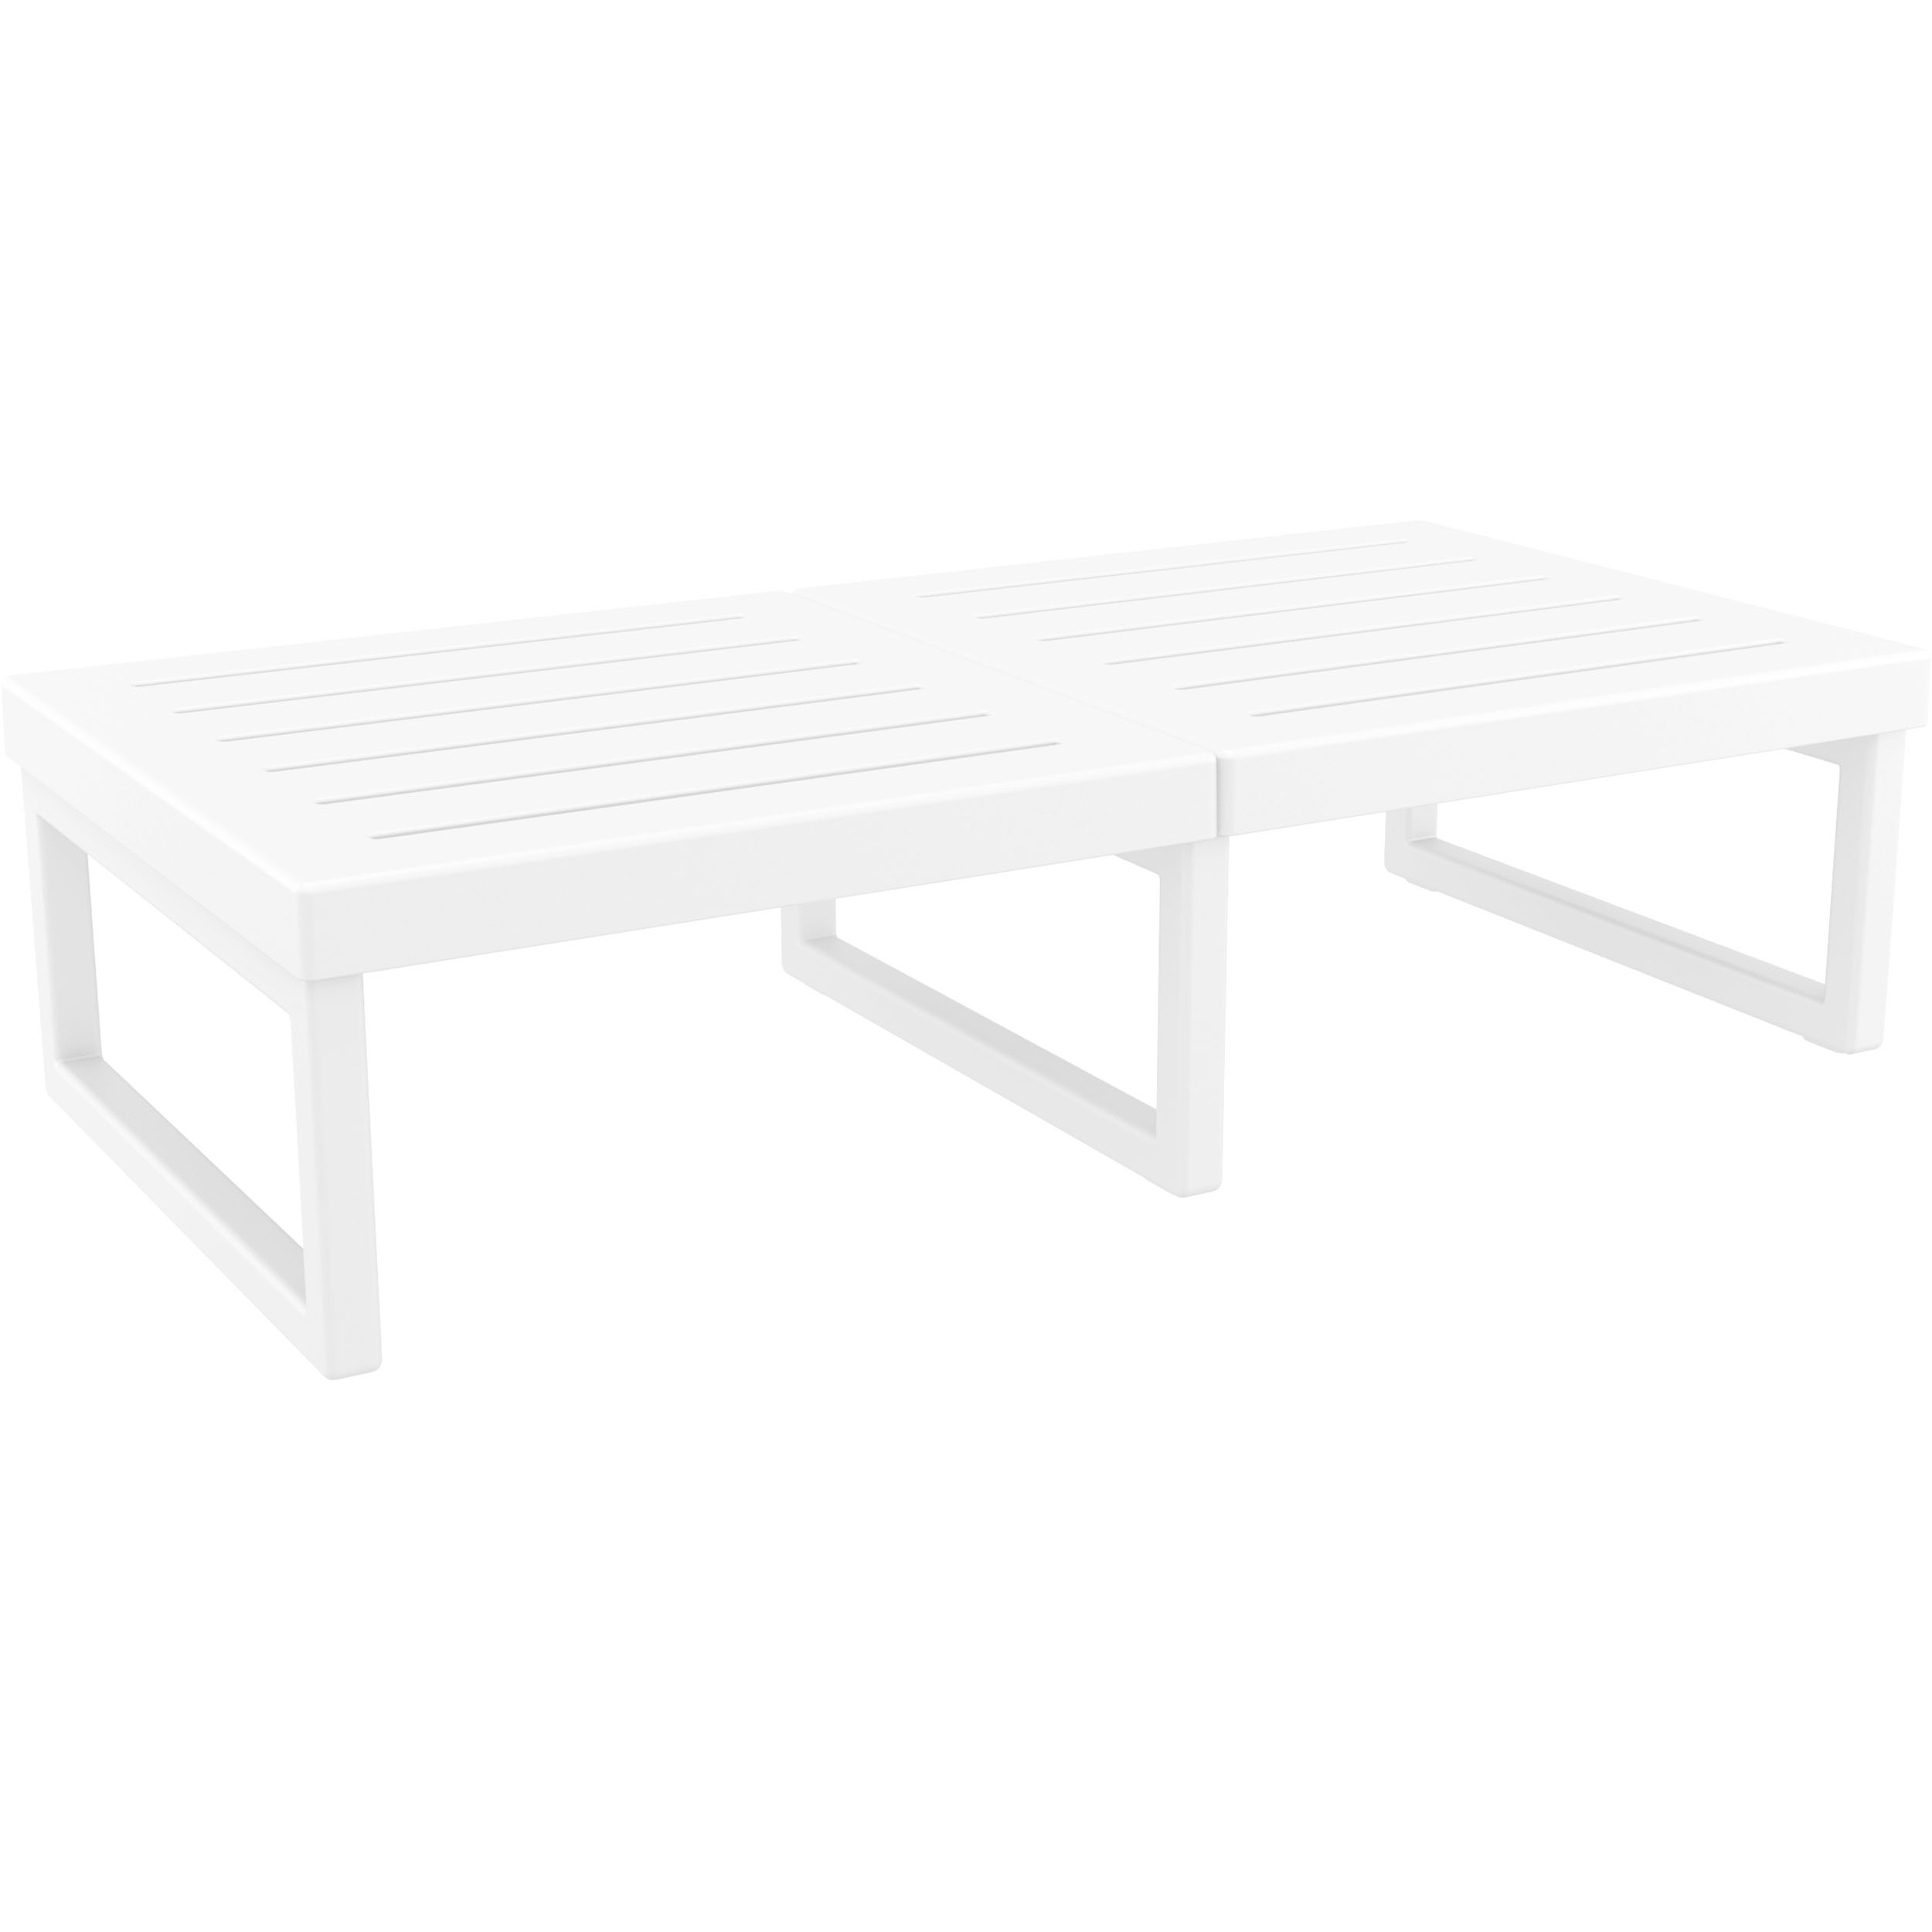 Mykonos Lounge Table XL